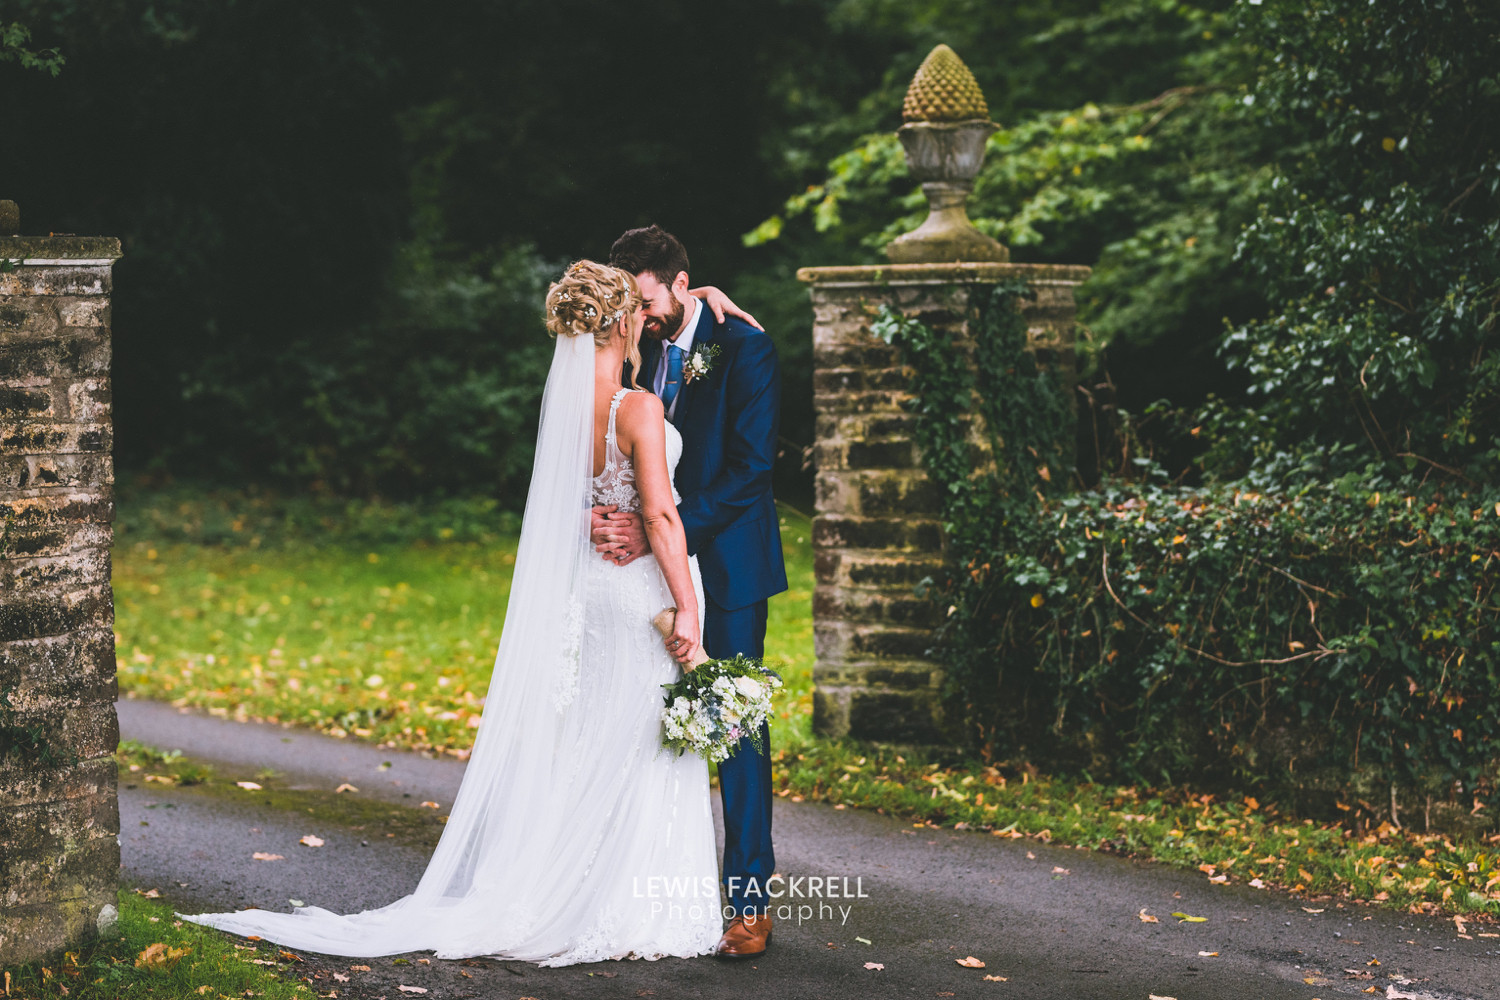 TogetherNess weddings - Lewis Fackrell Photography